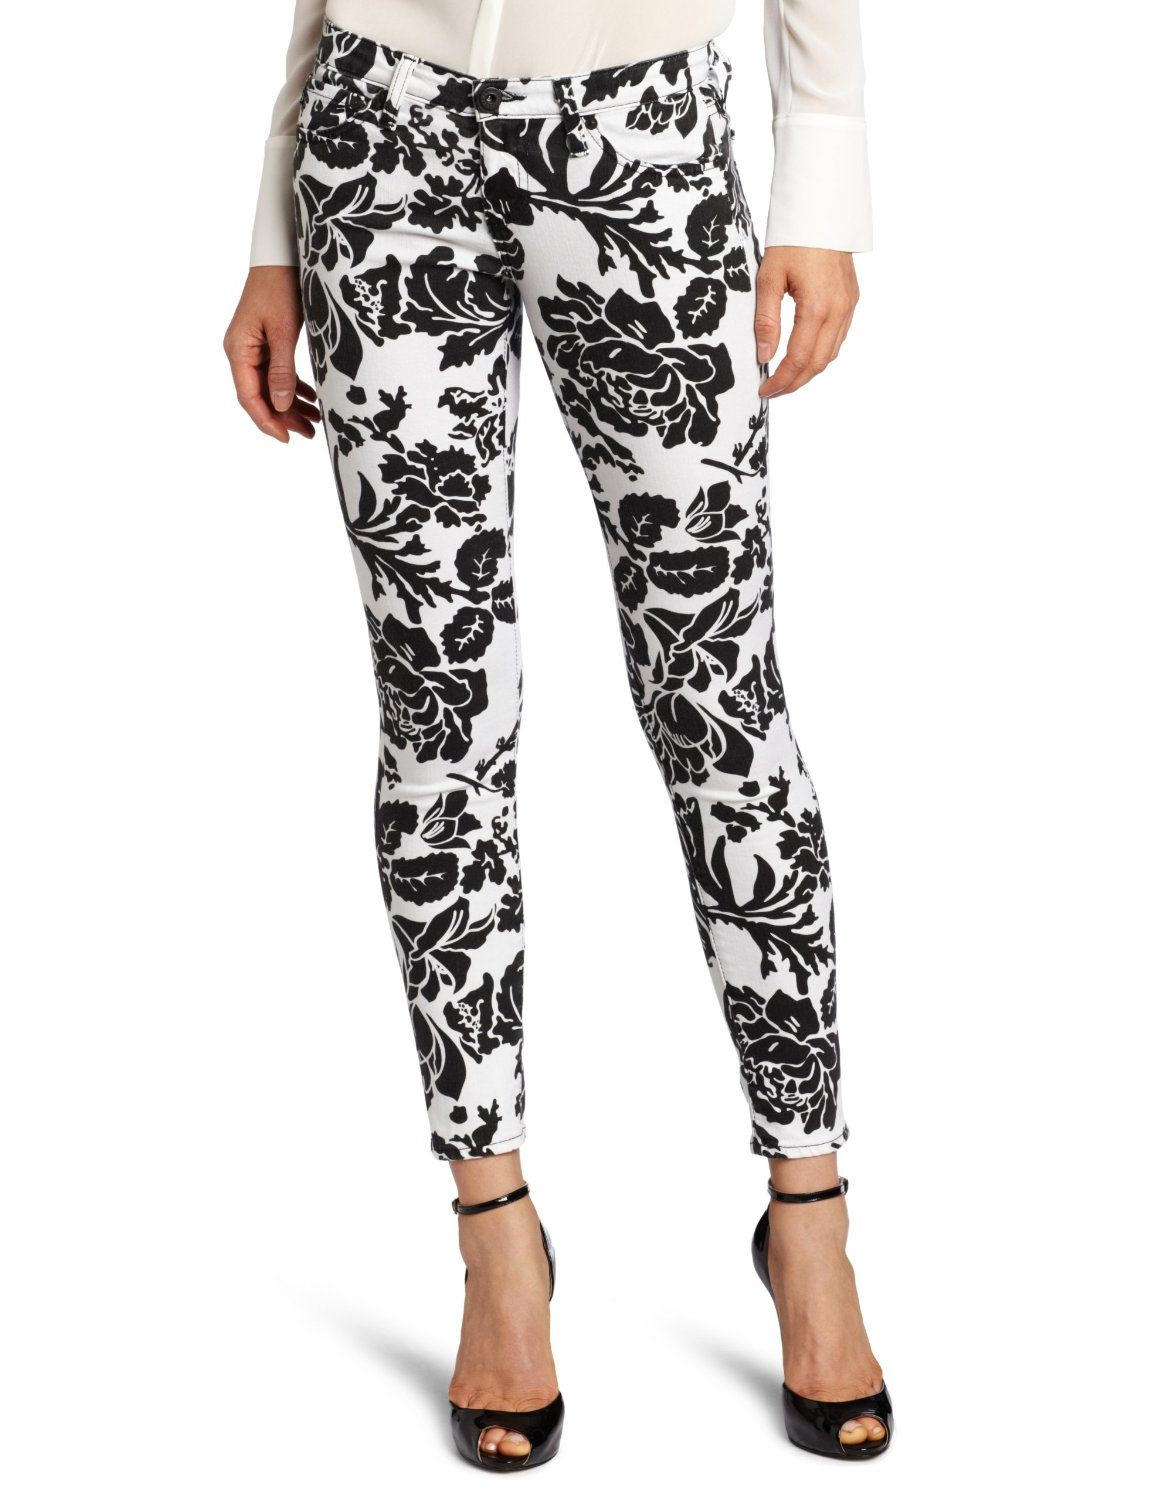 black and white floral jeans | Gommap Blog